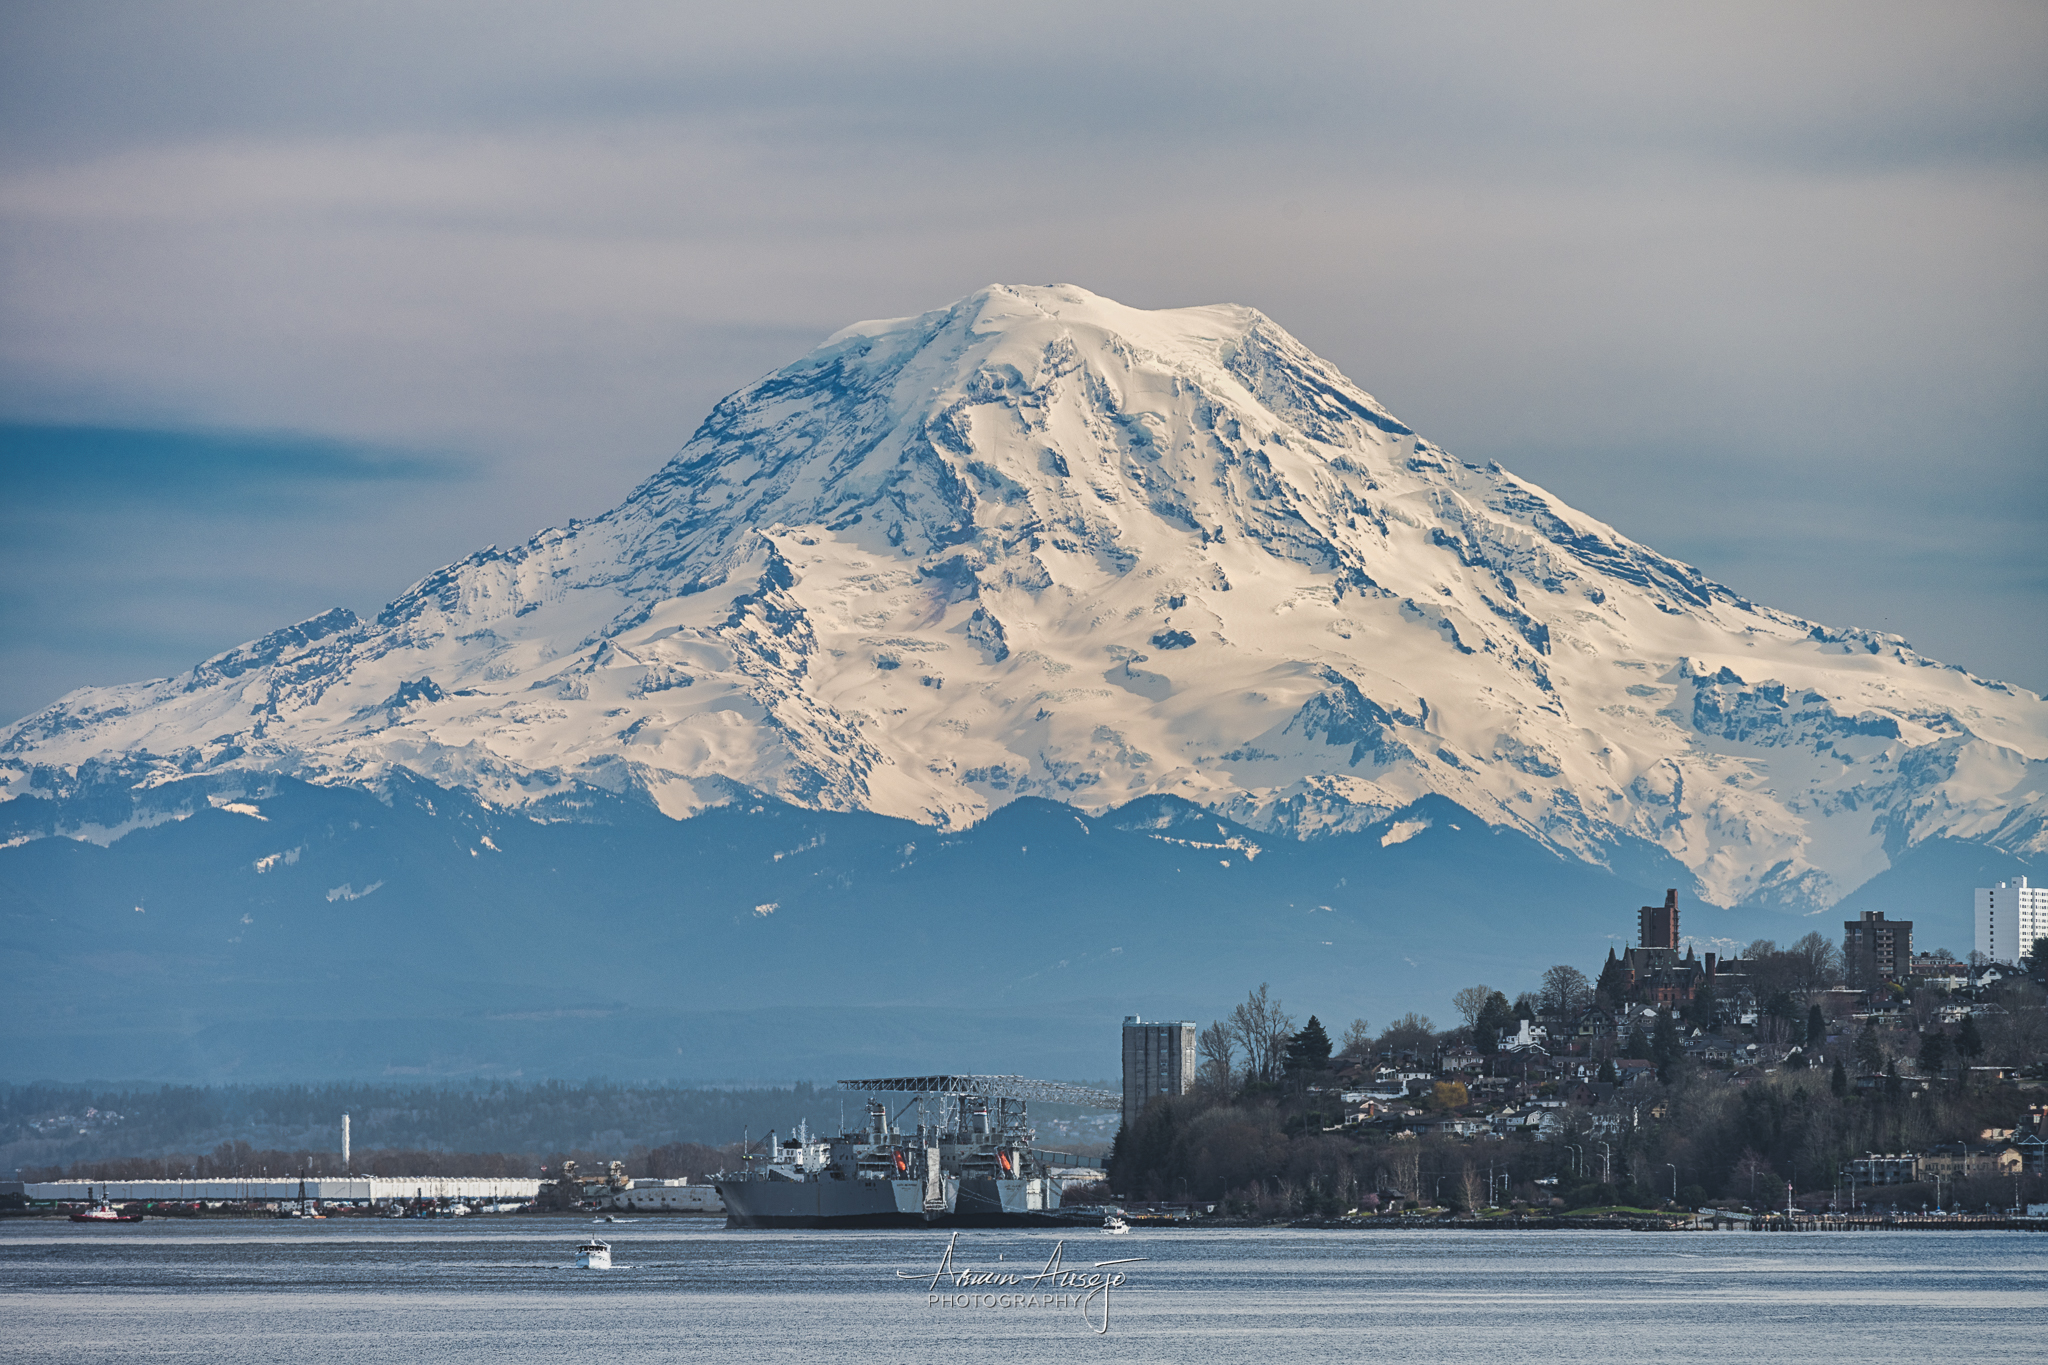 Mt. Rainier from Point Defiance with the Nikkor 300mm f/4E PF ED VR